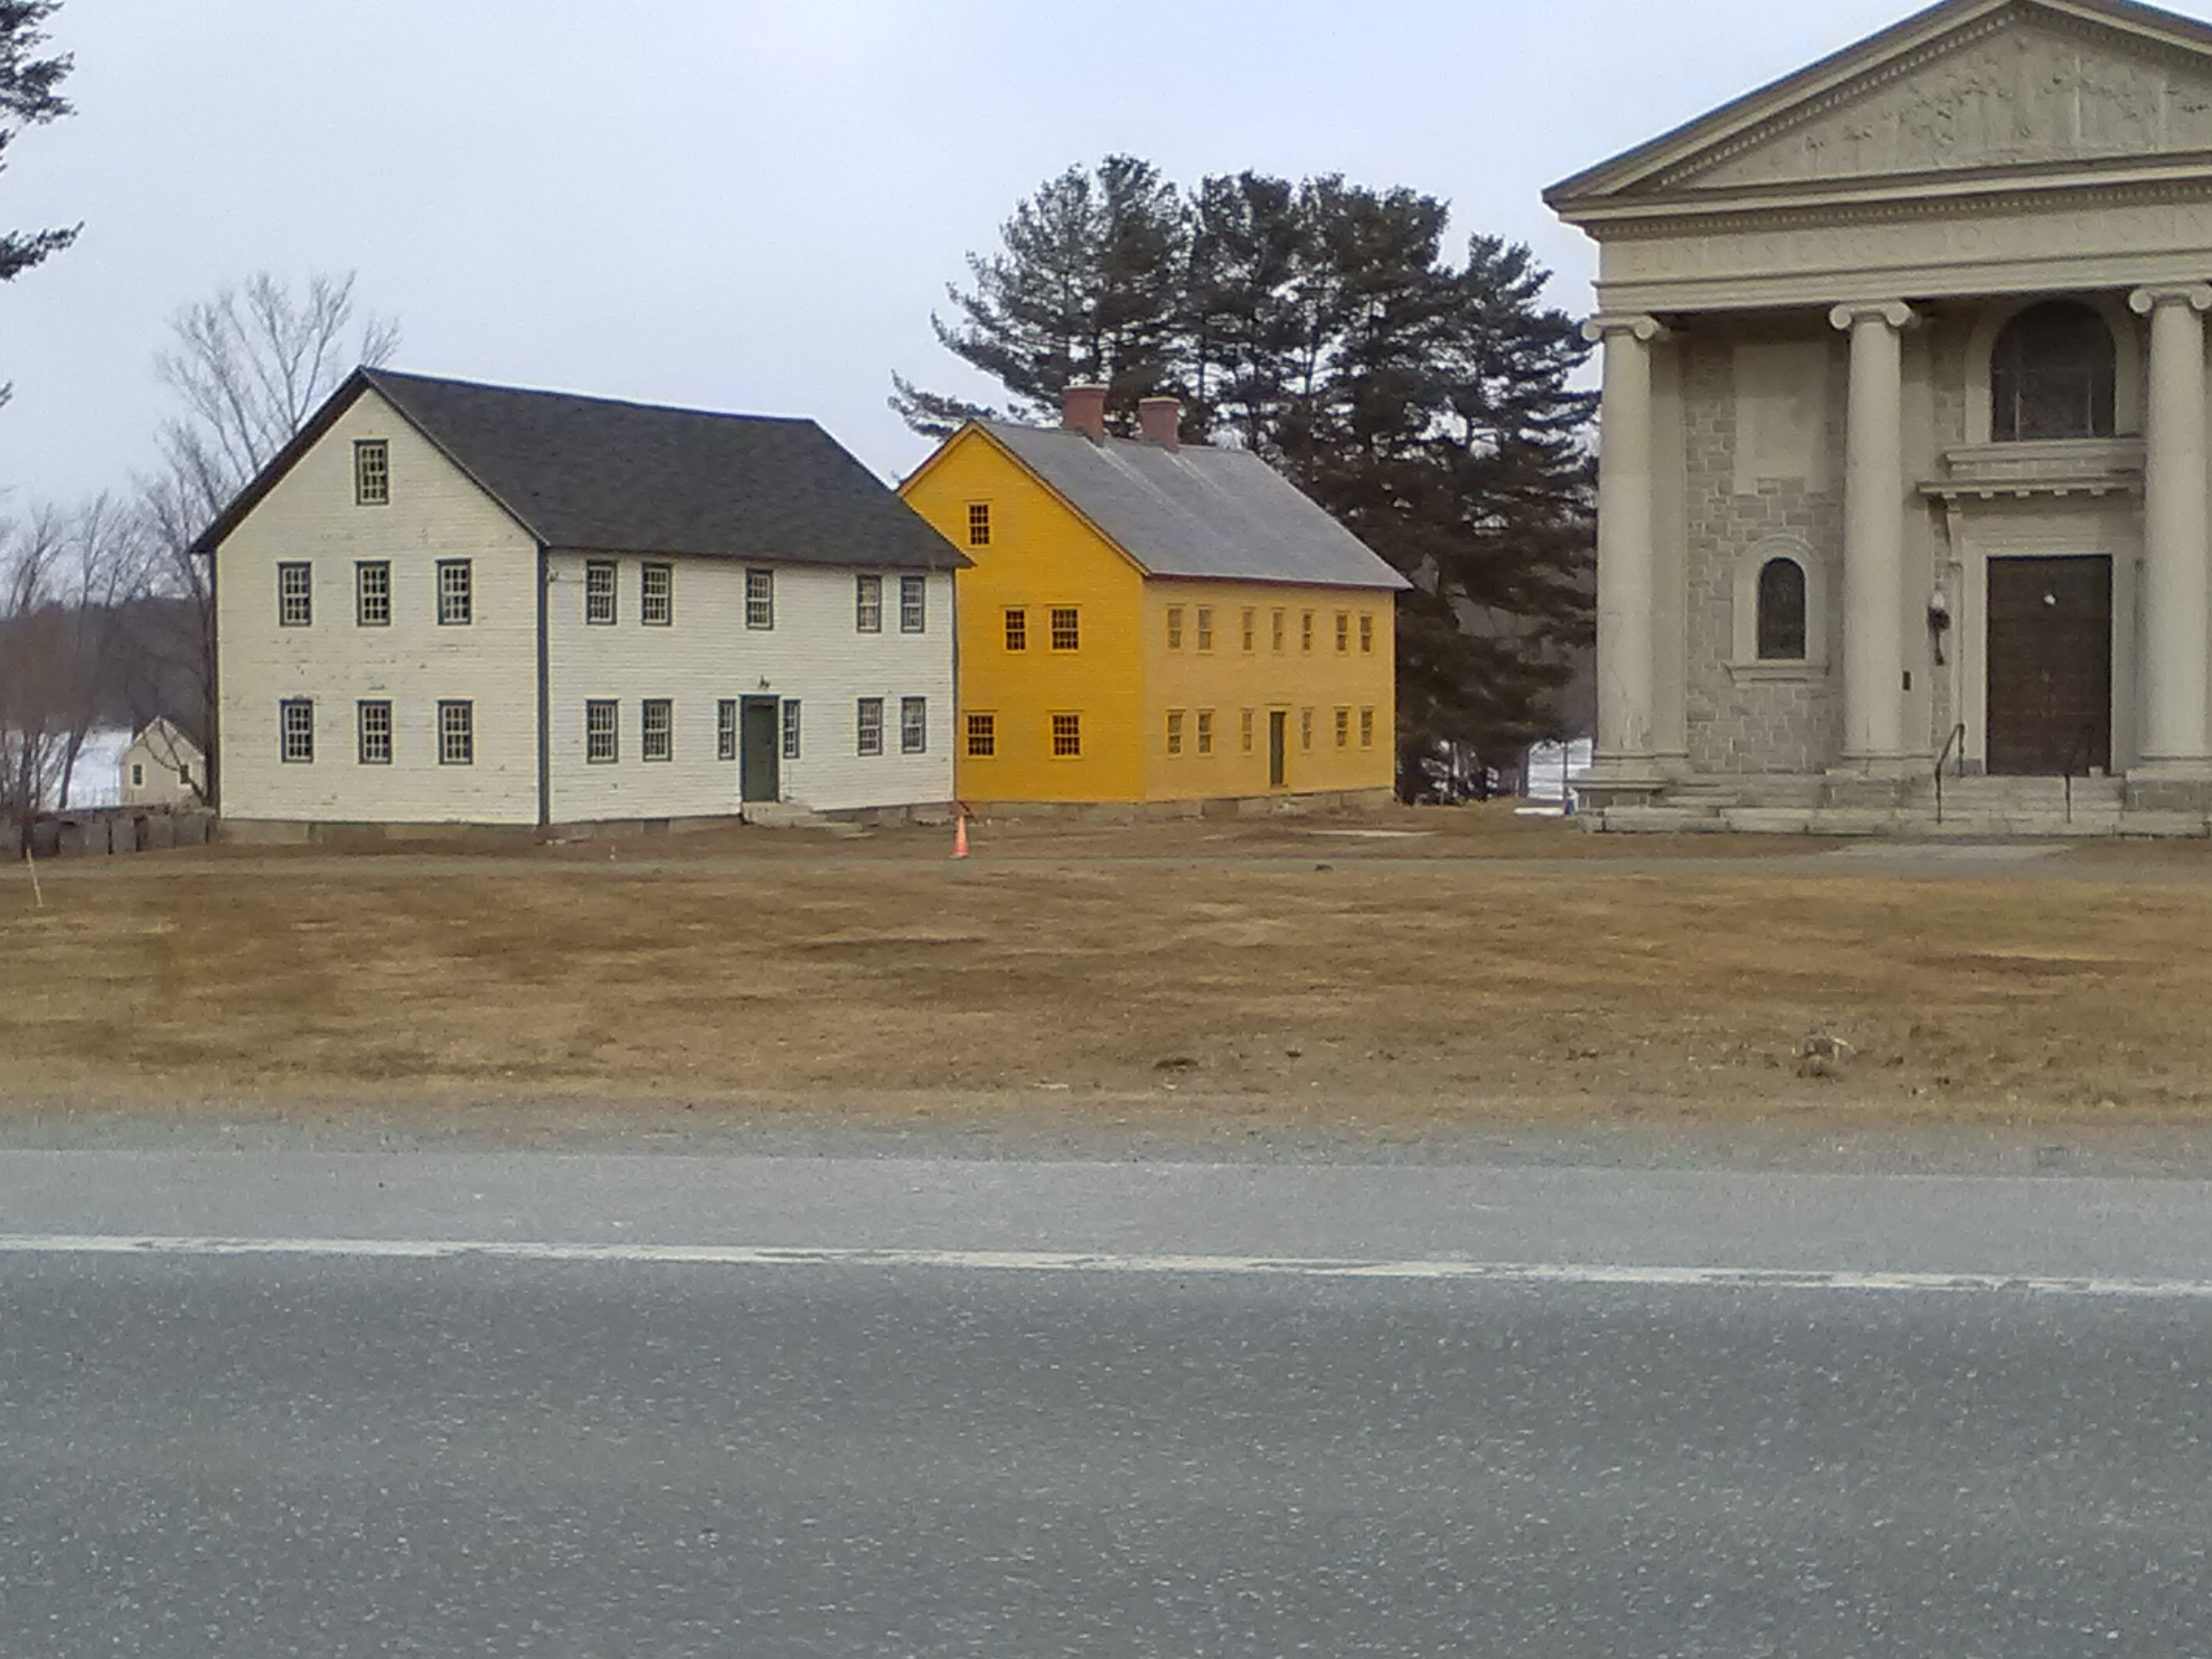 Historical Shaker Village in Enfield, NH